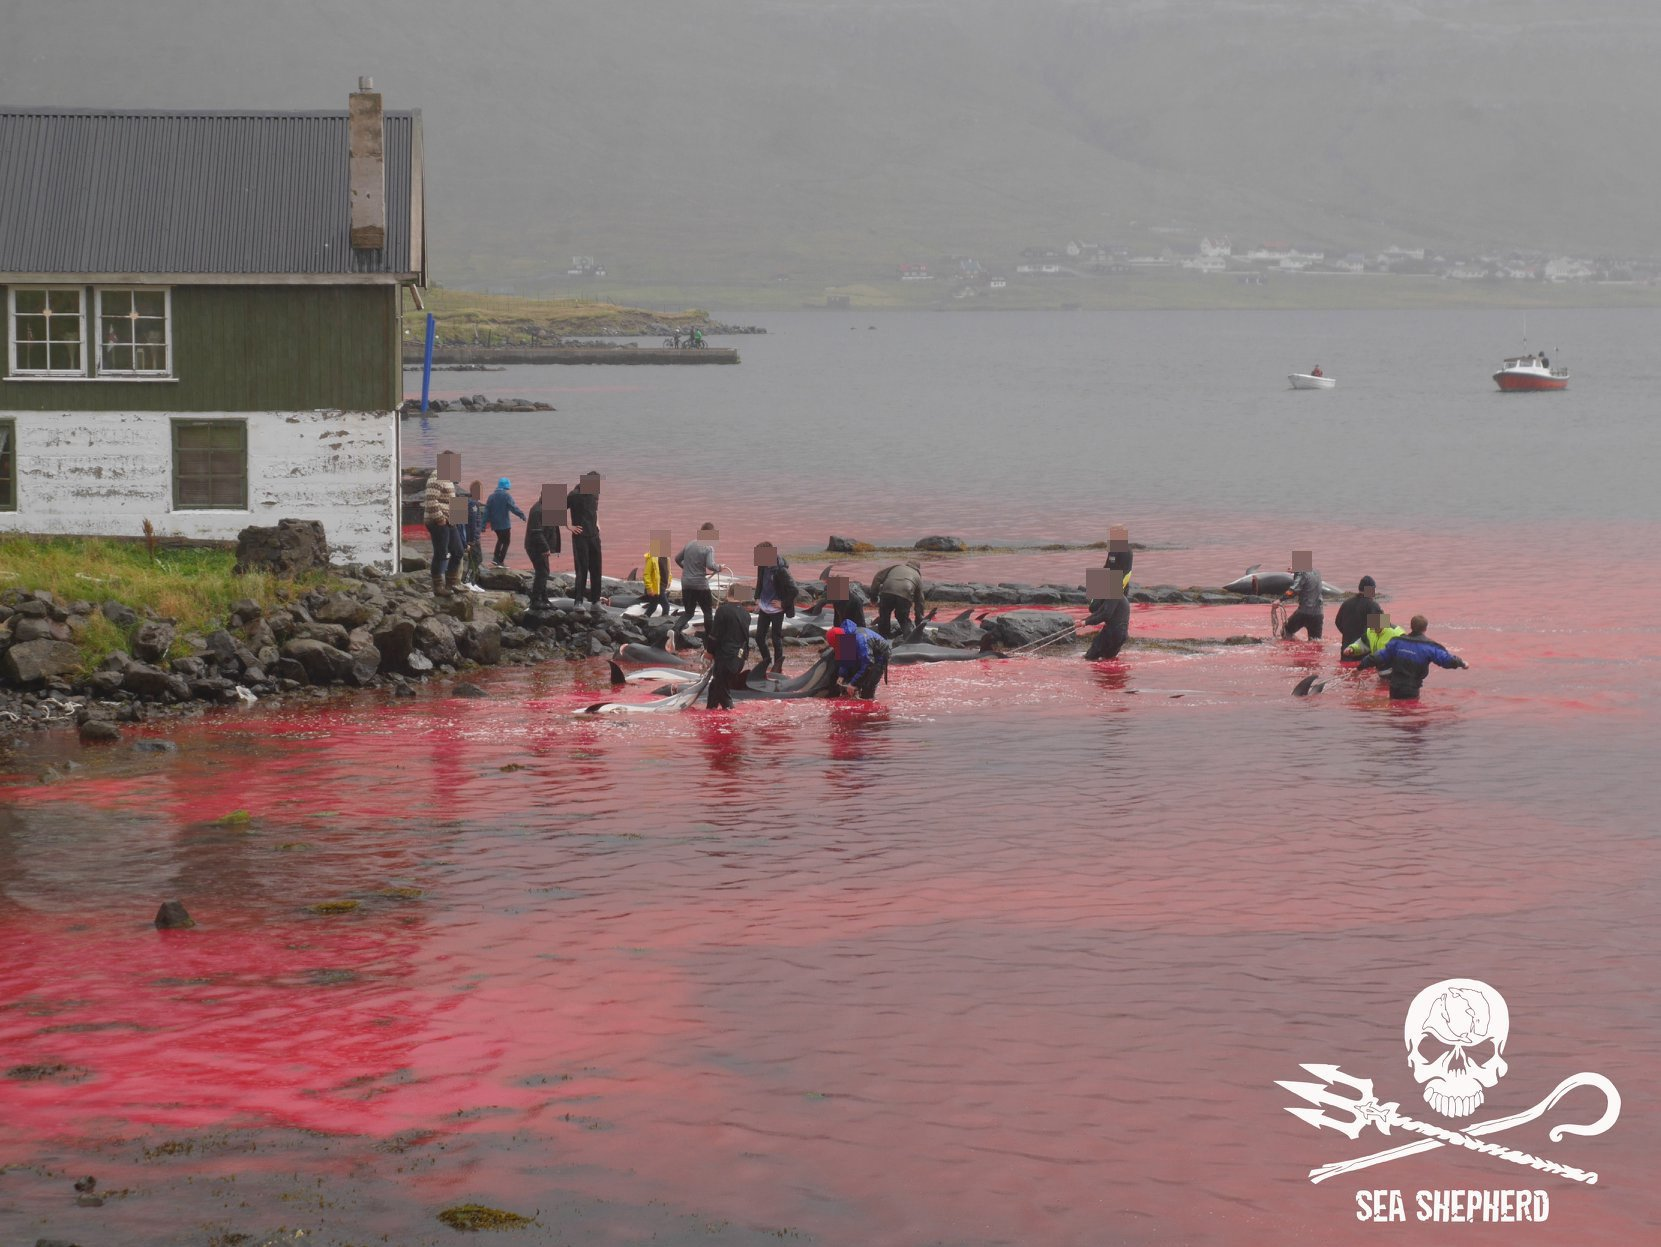 Sea turns red with blood as 100 white dolphins and whales are slaughtered by fishermen